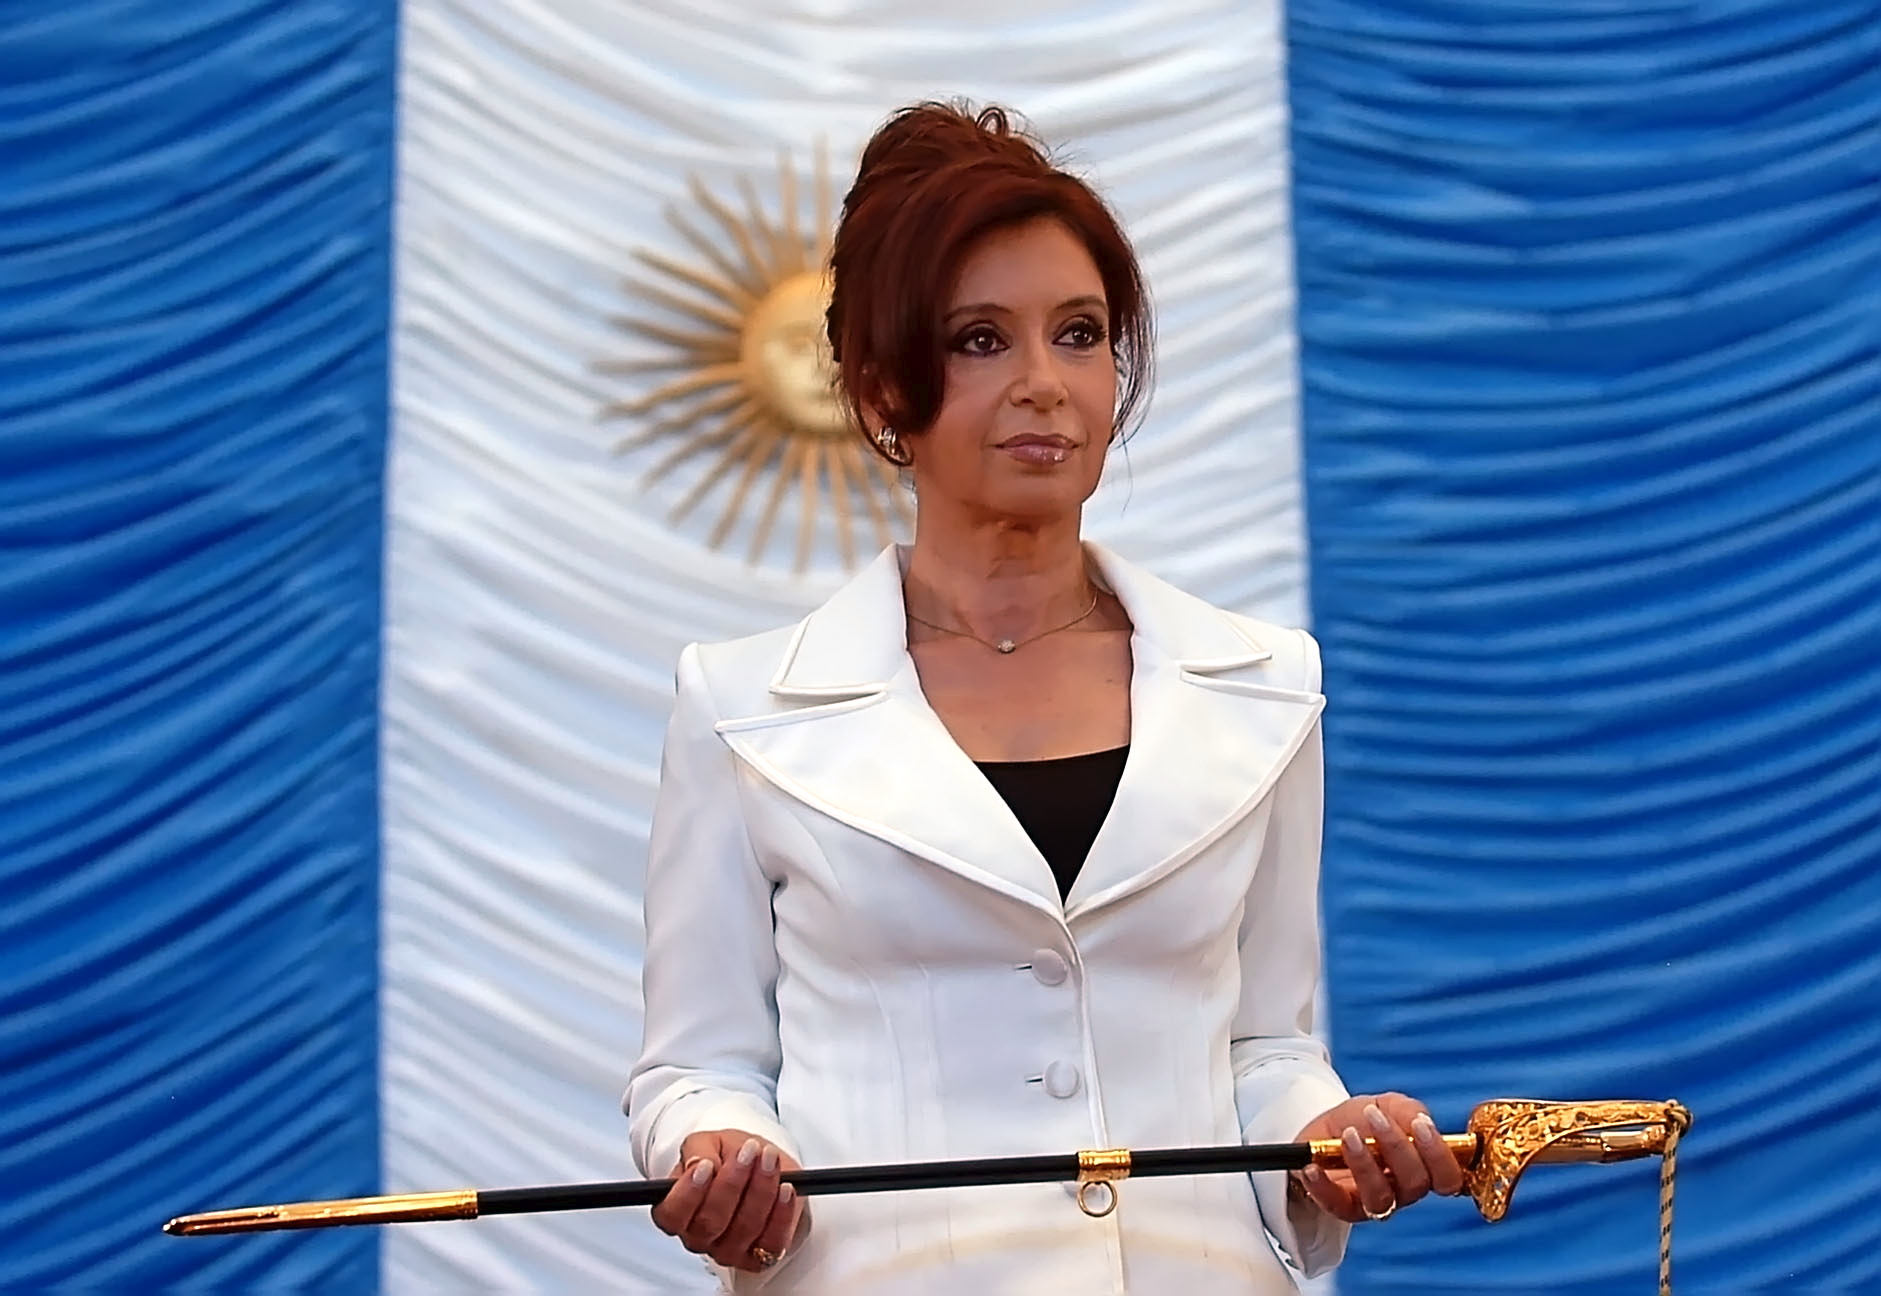 Argentina ex-president indicted on bribery charges